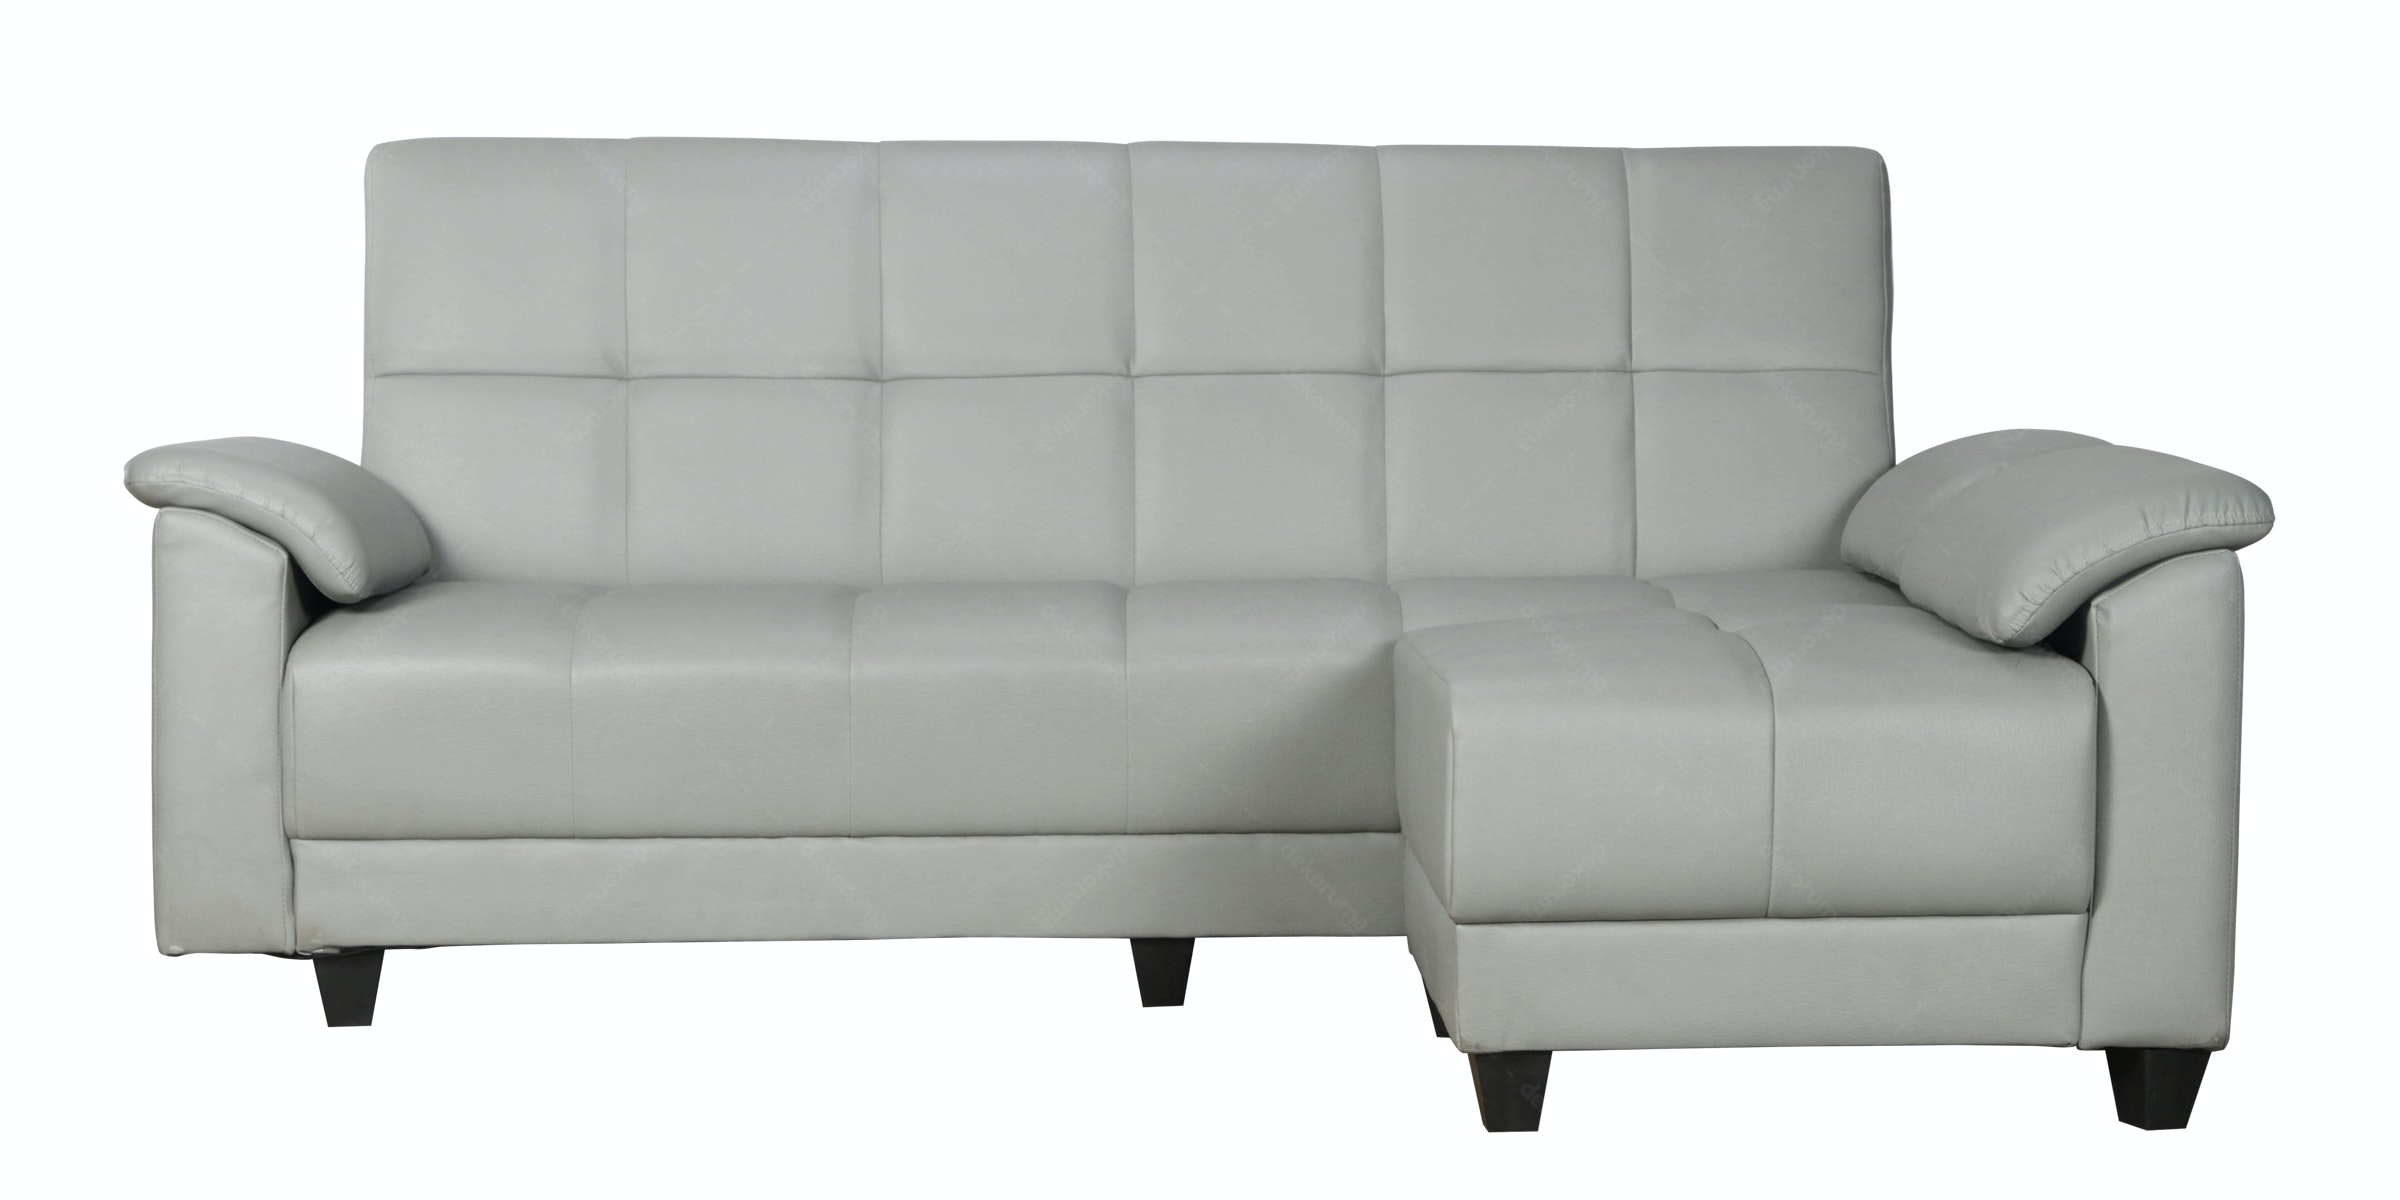 Ornela Sofa Bed New Bellagio Latex Dan Puff Abu-abu Muda